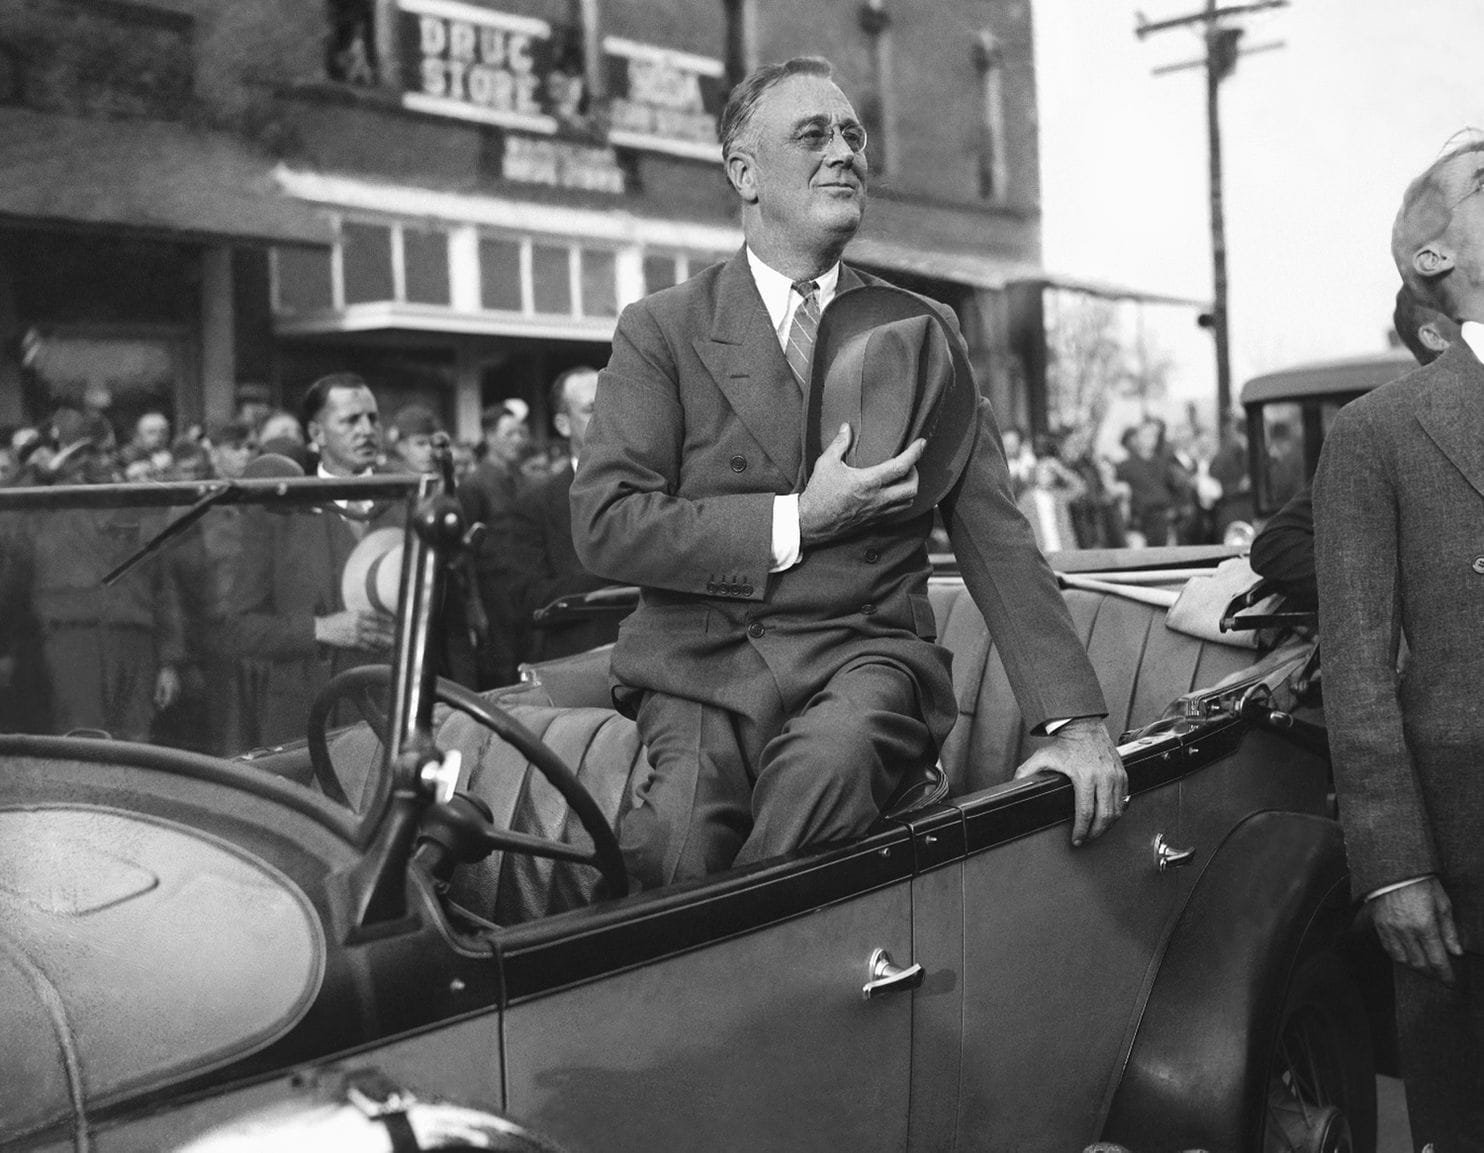 FDR in a suit